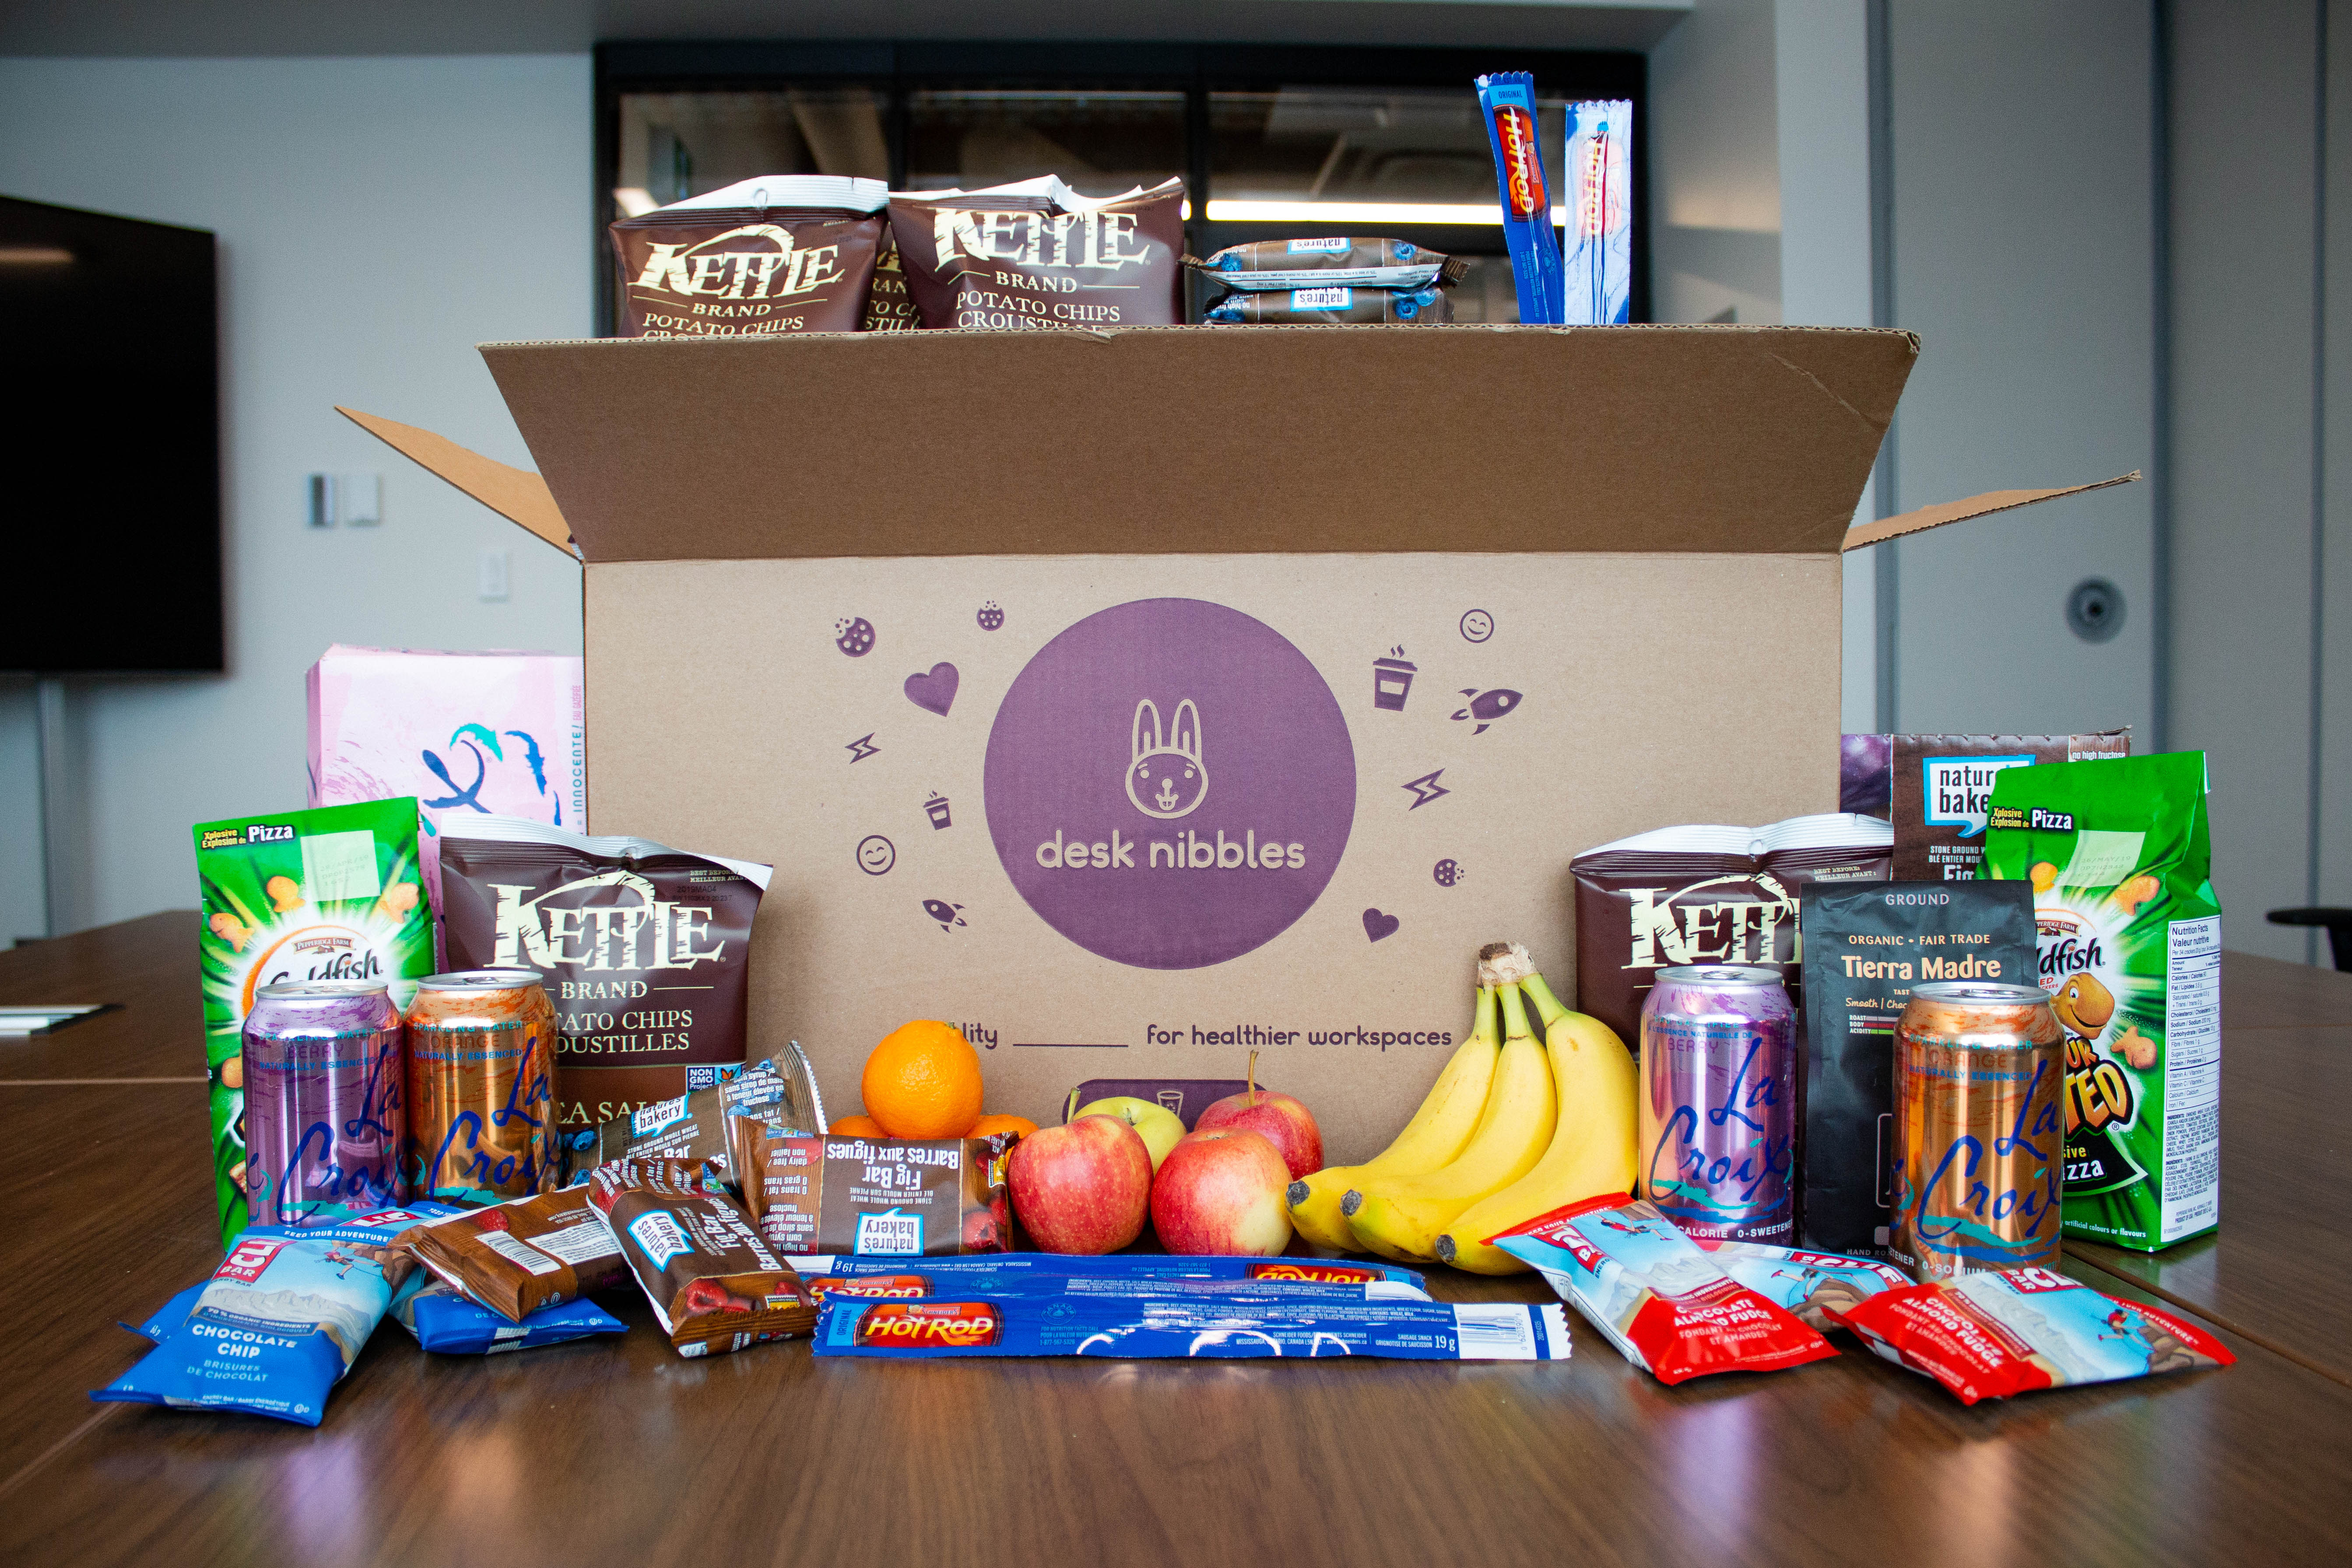 Healthy office snacks delivered to offices are a perfect desk accessory!